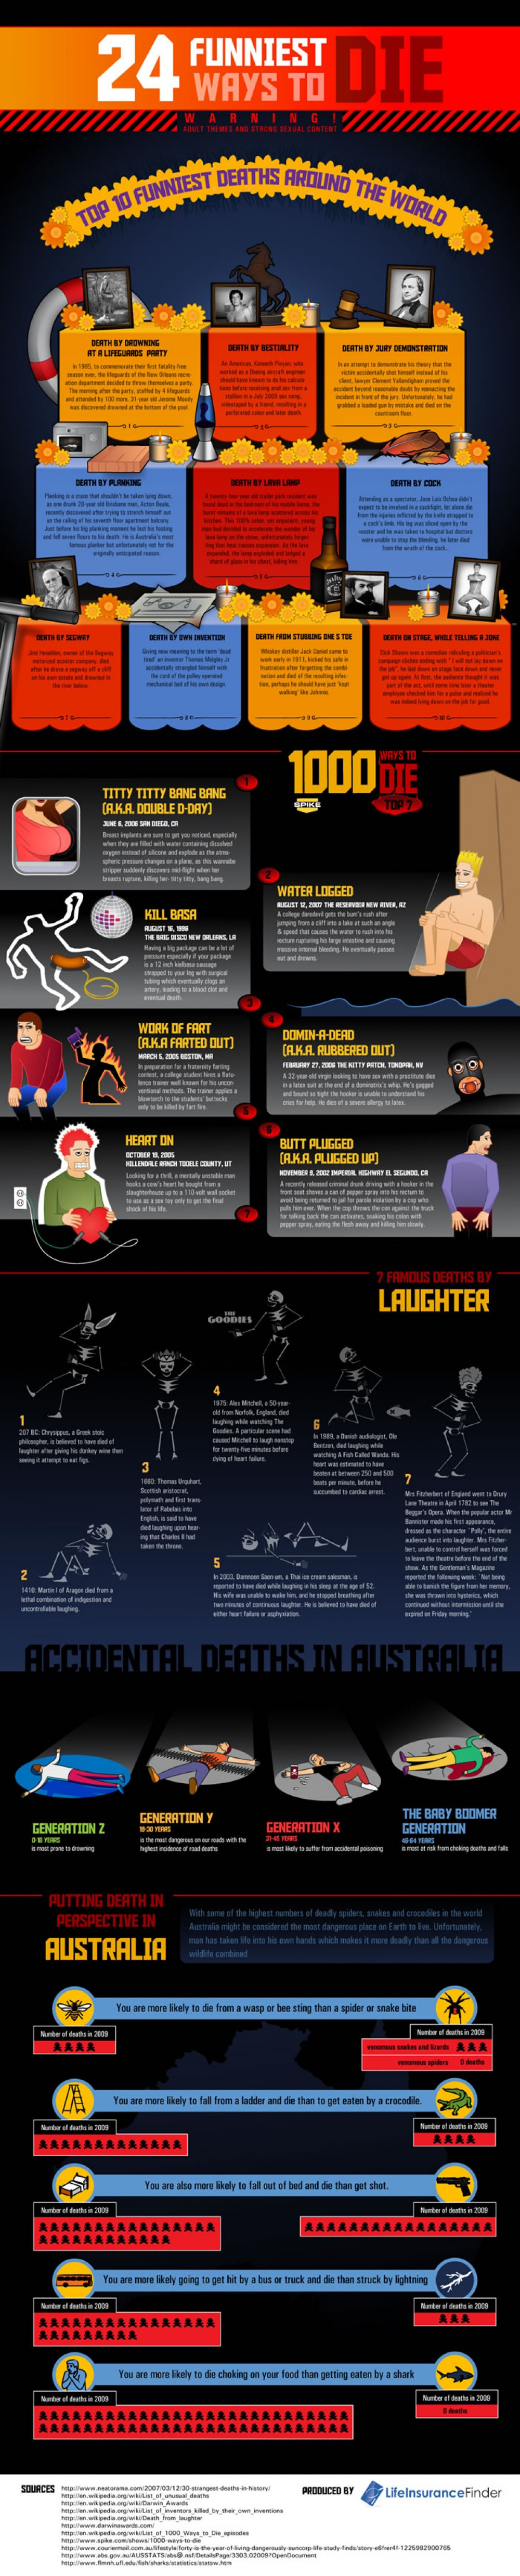 Funniest Death Infographic